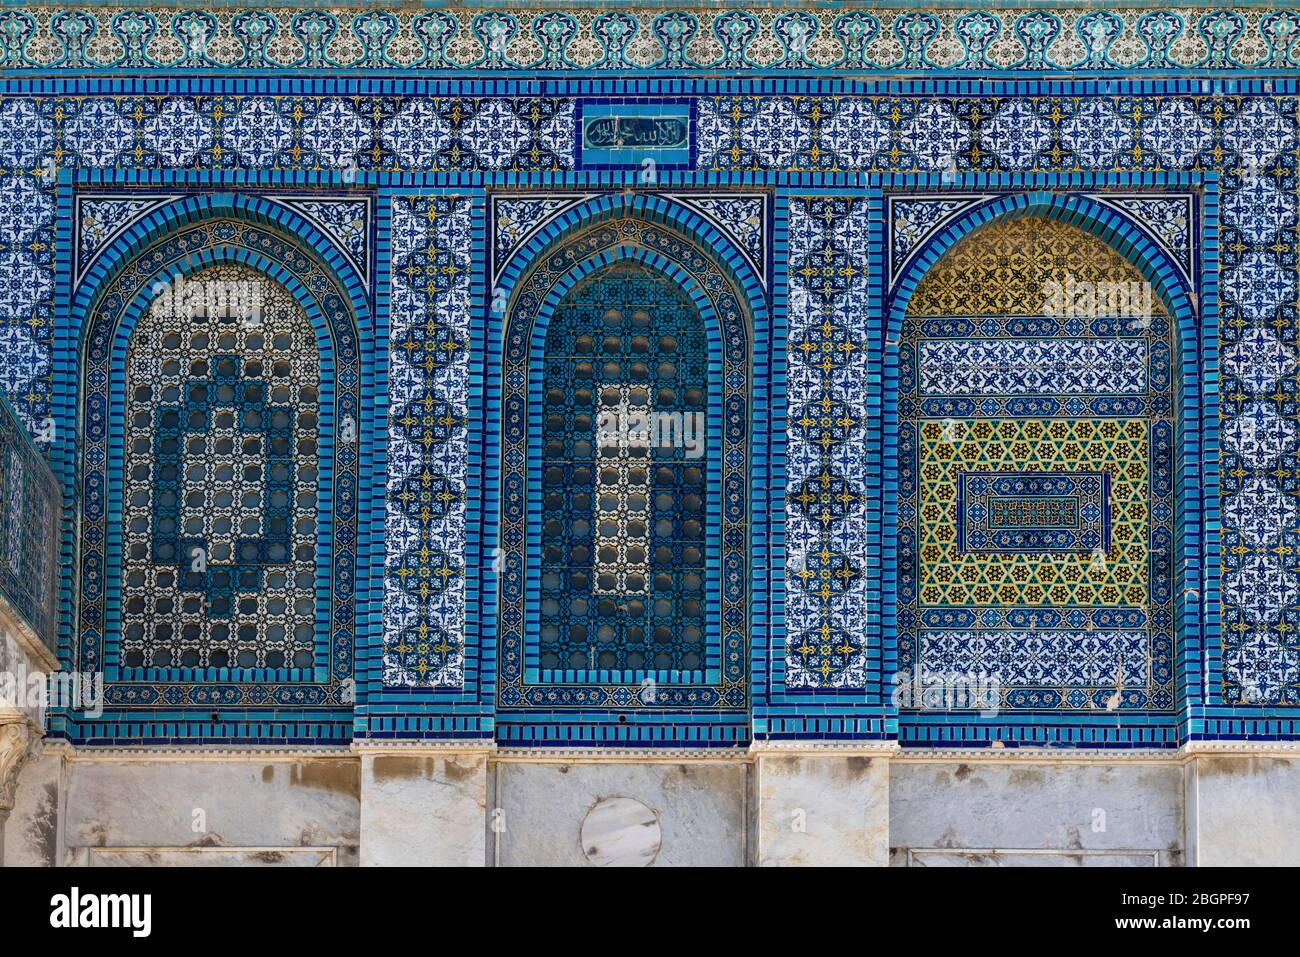 Israel, Jerusalem, al-Haram ash-Sharif, The Dome of the Rock shrine, Qubbat al-Sakhrah, is located on the Temple Mount on the site of the Soloman's Temple and was compted about 692. A.D. The Old City of Jerusalem and its Walls is a UNESCO World Heritage Site. The beautiful ceramic tile work was done during the reign of the Ottoman sultan Suleiman the Magnificent in the 1500's. Stock Photo